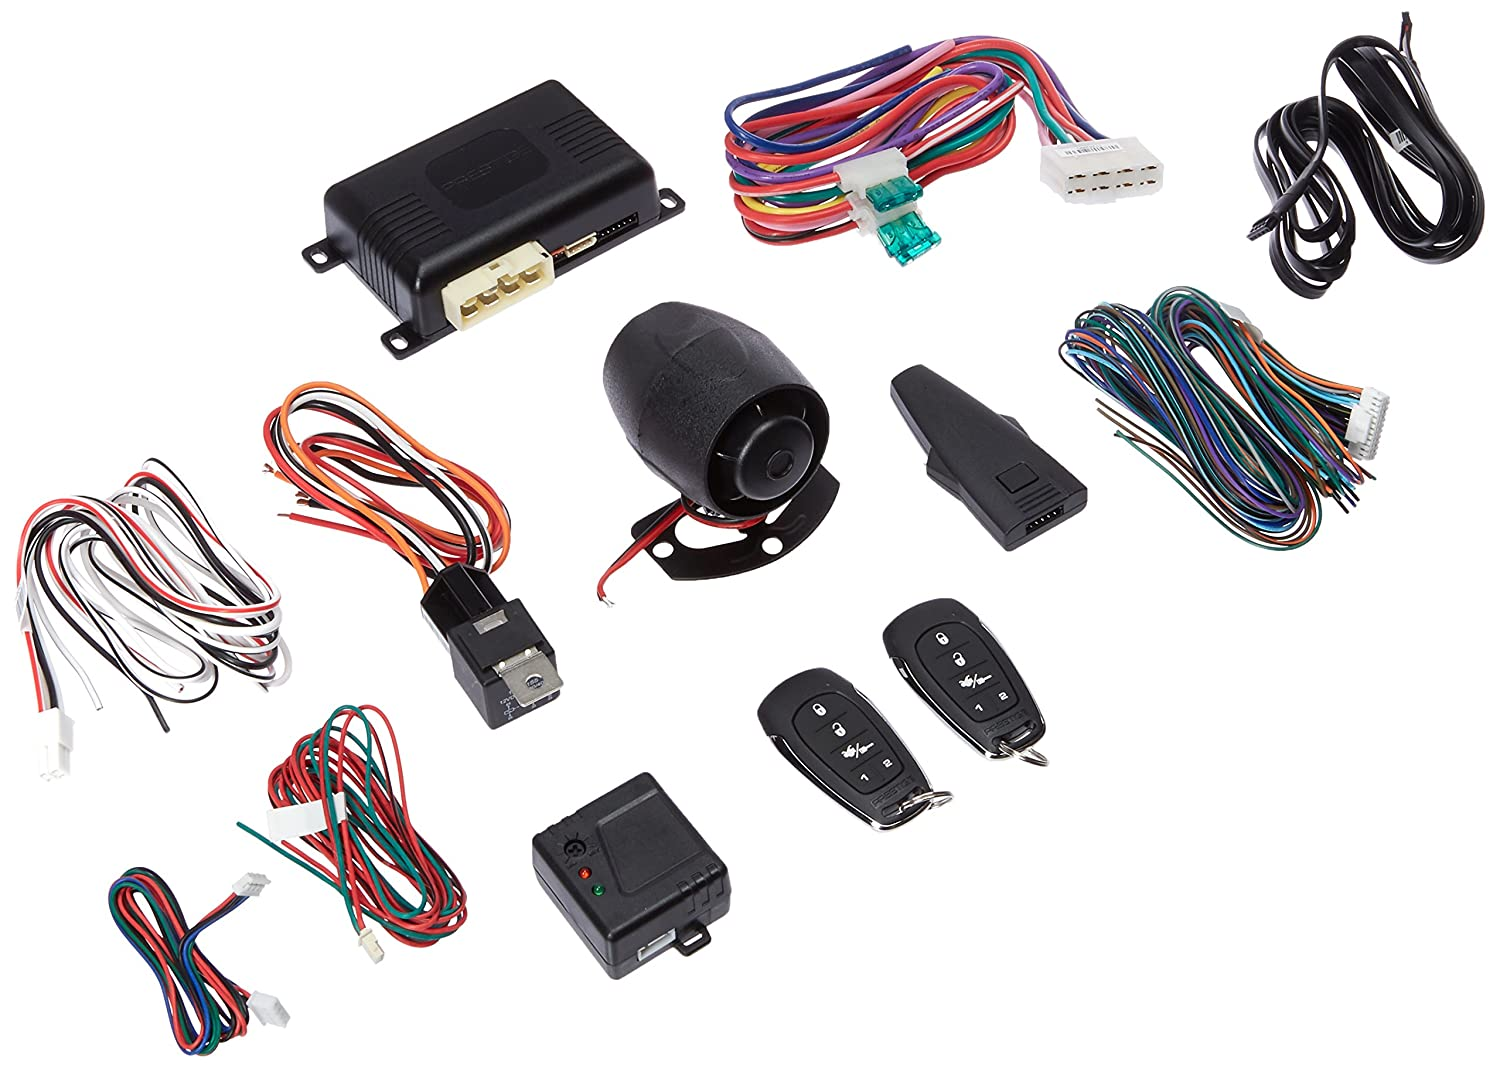 Prestige Aps787e Remote Start Car Alarm Keyless System Multitone Siren Circuit Diagram Replaces Aps787c With Programmable Buttons Cell Phones Accessories